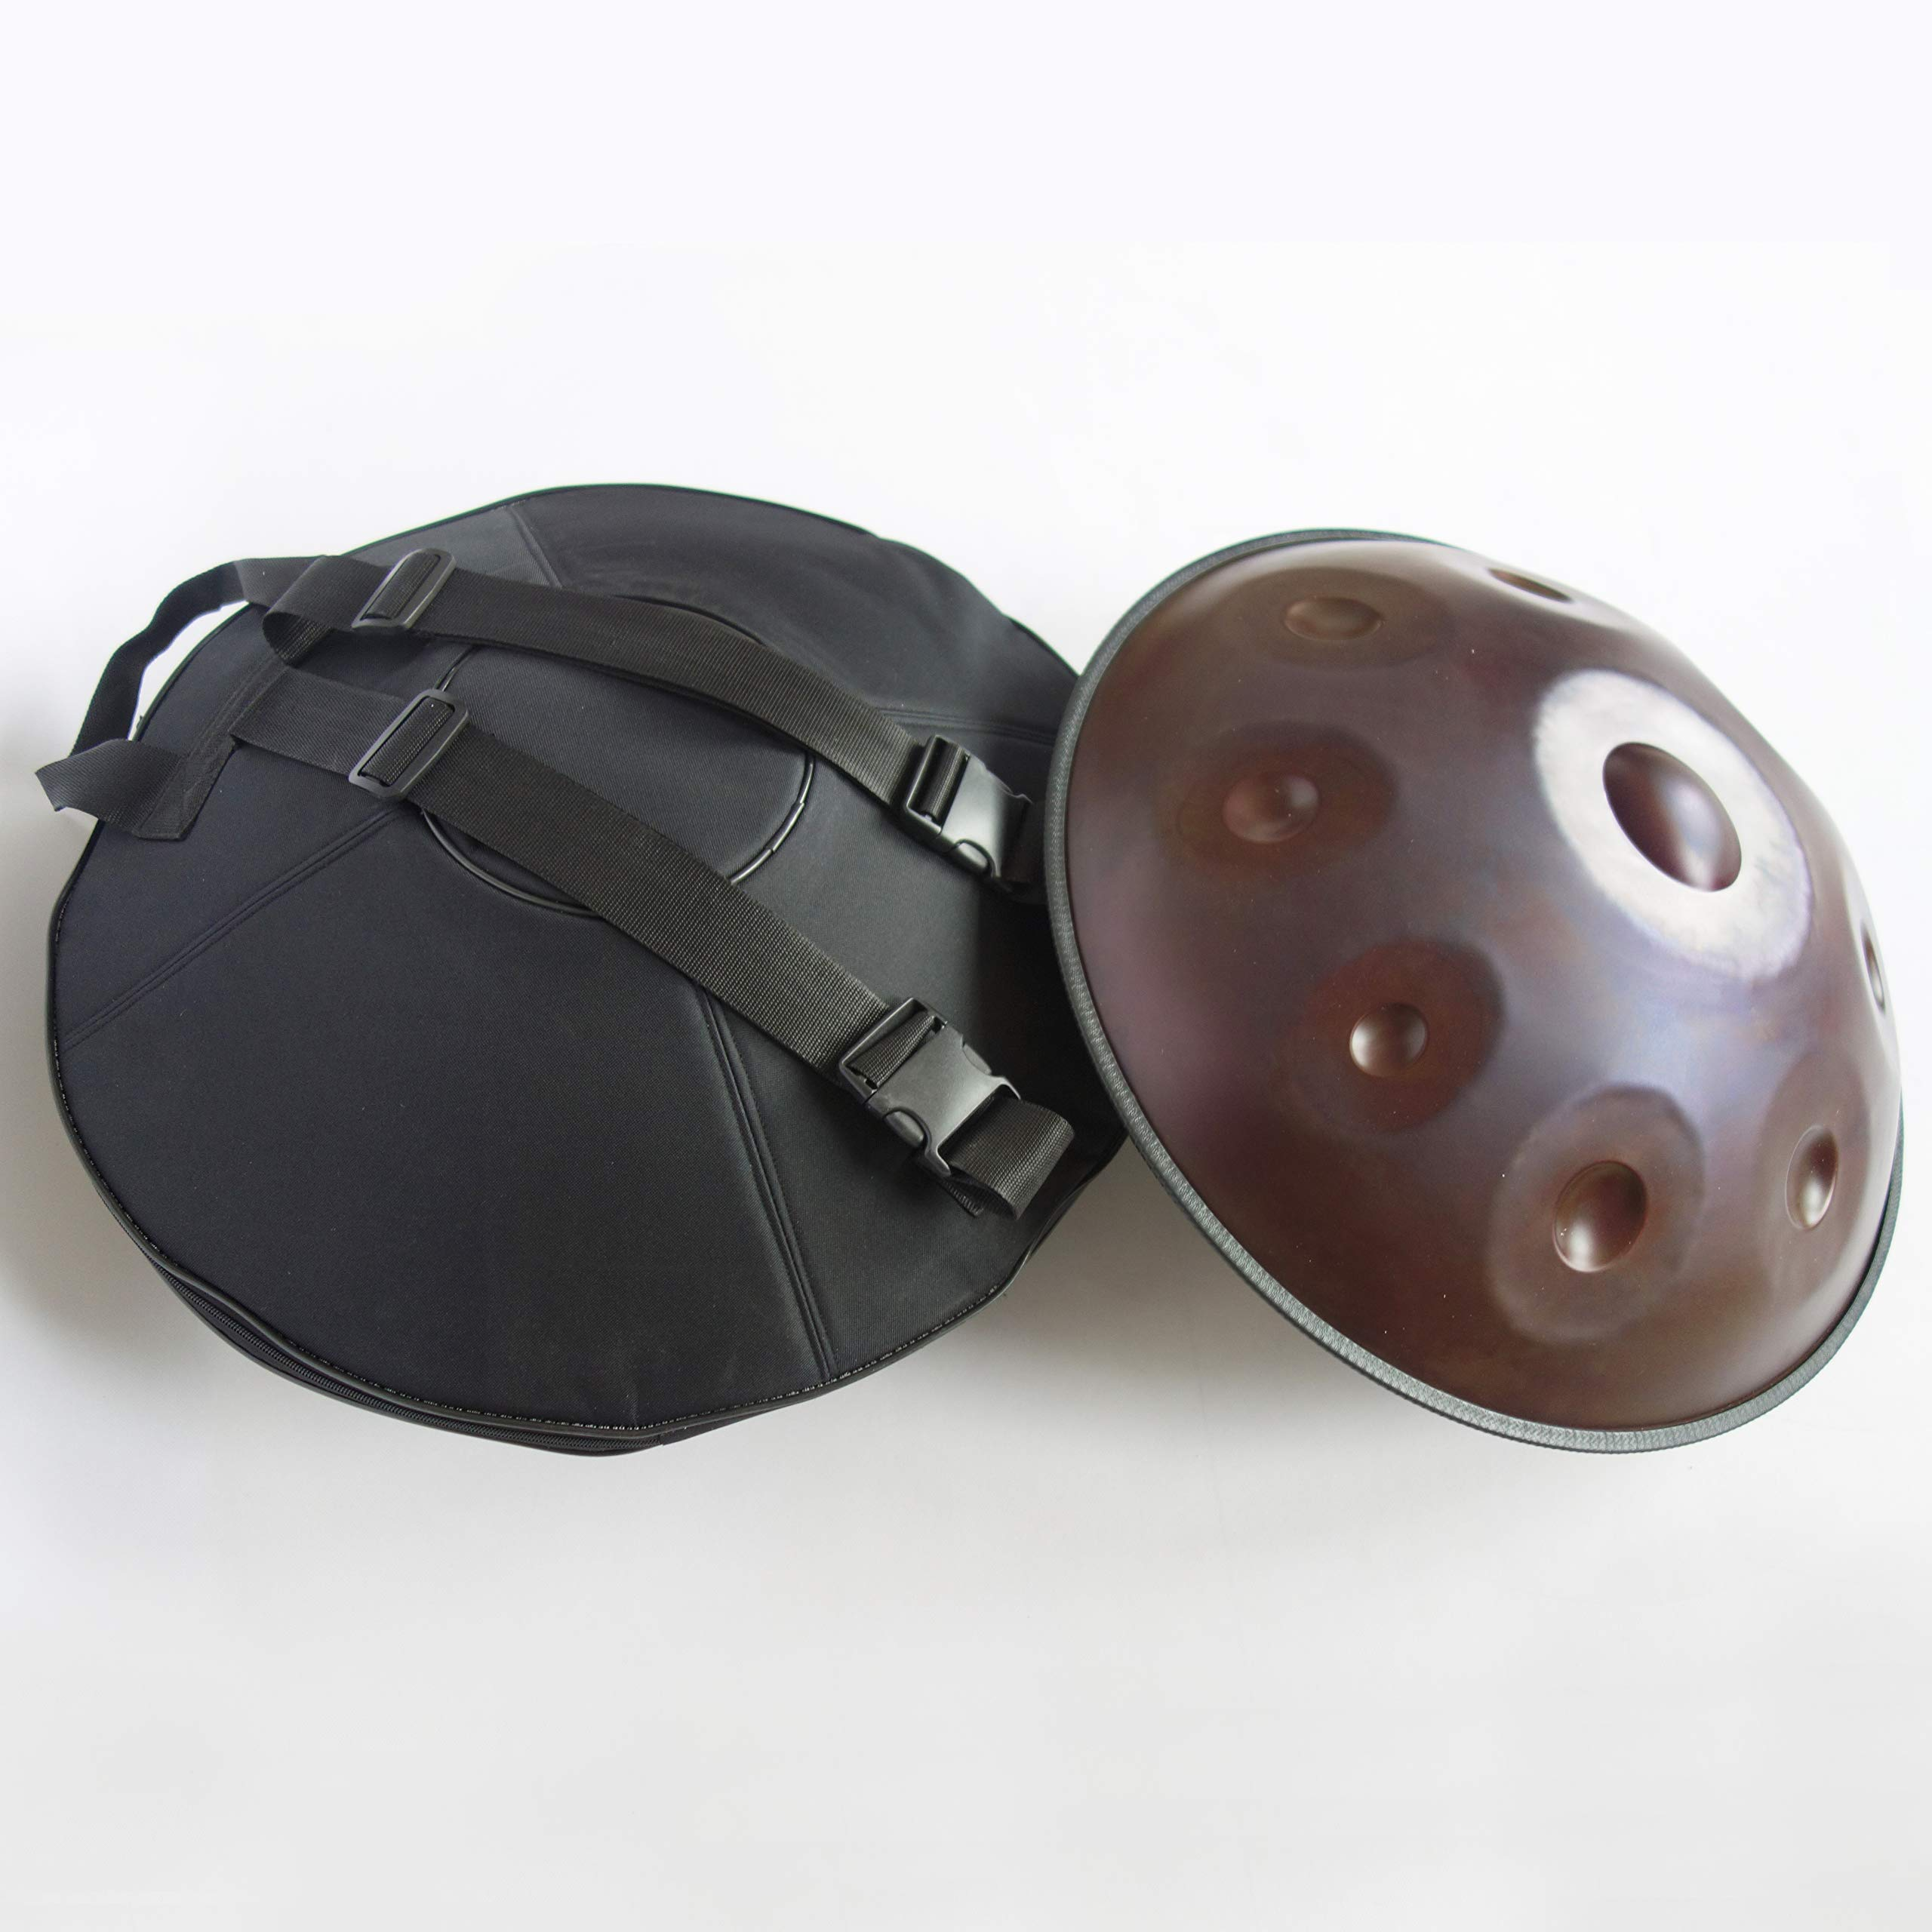 CVNC Harmonic Handpan Brown Color 9 Note Steel Tongue Percussion Drum 21.65 Inch(55cm) Hand Drum Hand Pan Hanging Bag by CVNC (Image #6)